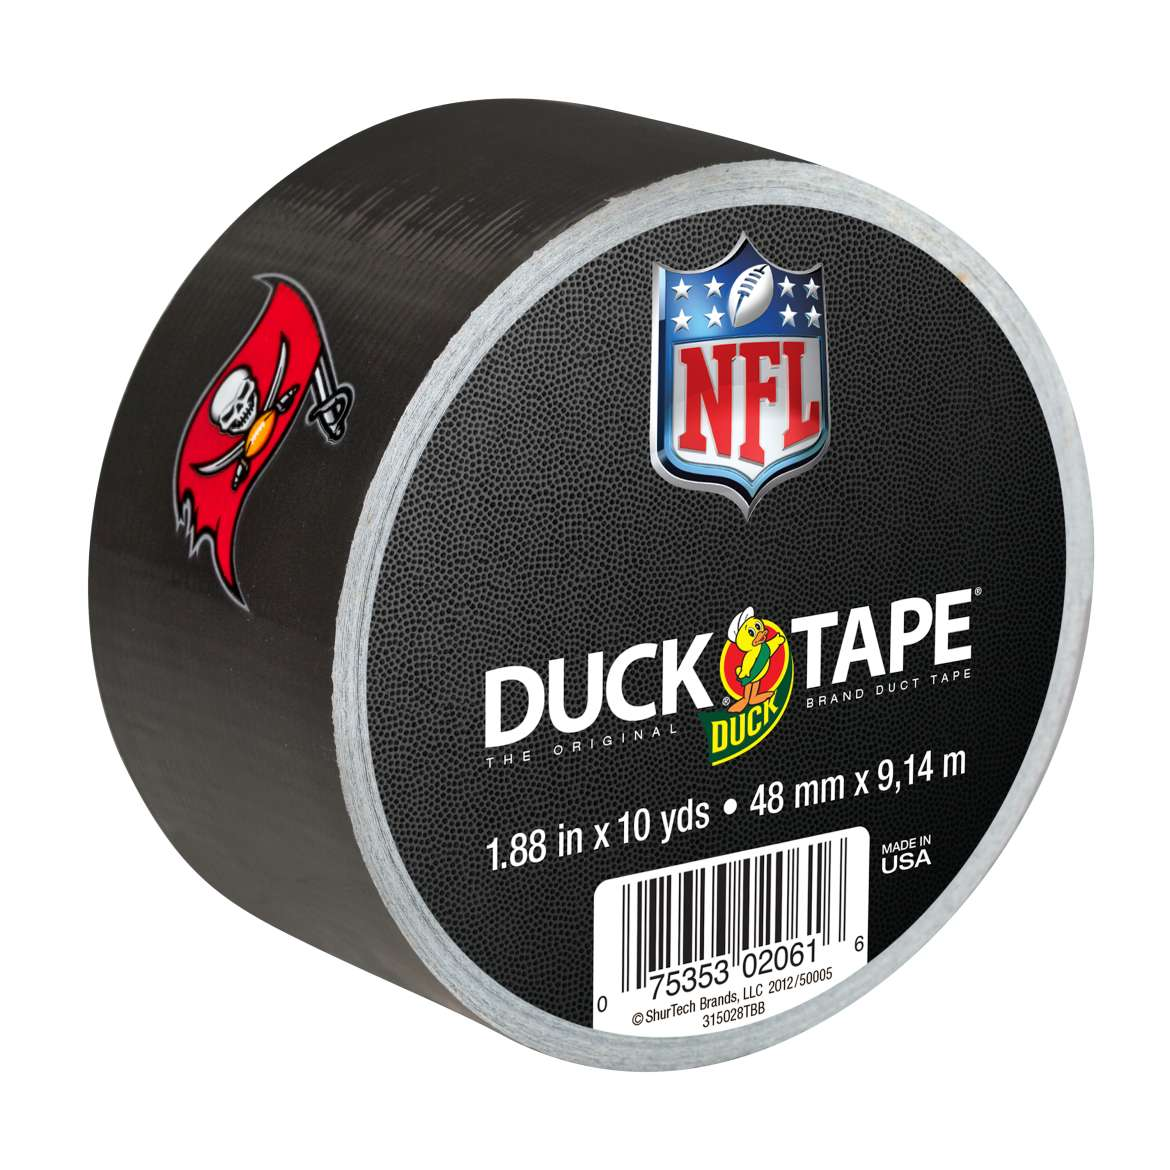 "Duck Brand Duct Tape, NFL Duck Tape, 1.88"" x 10 yard, Tampa Bay Buccaneers"